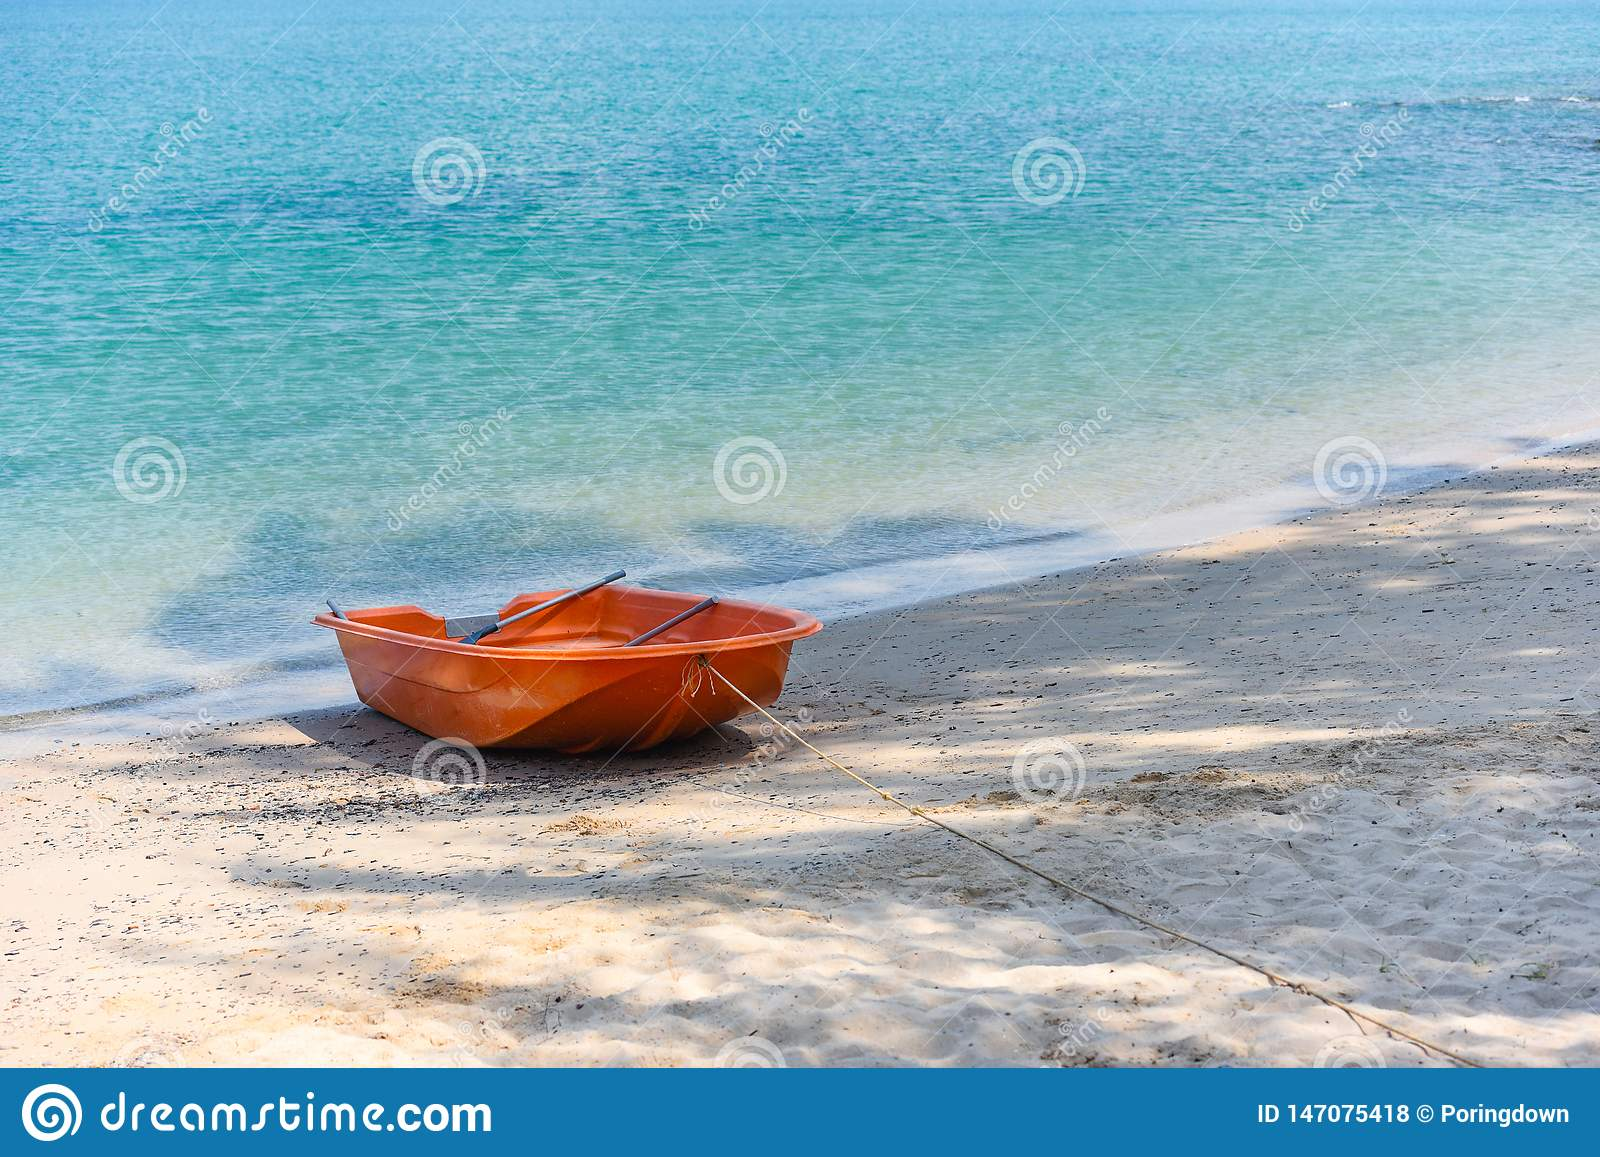 boat on beach summer background sea sandy beautiful of blue ocean